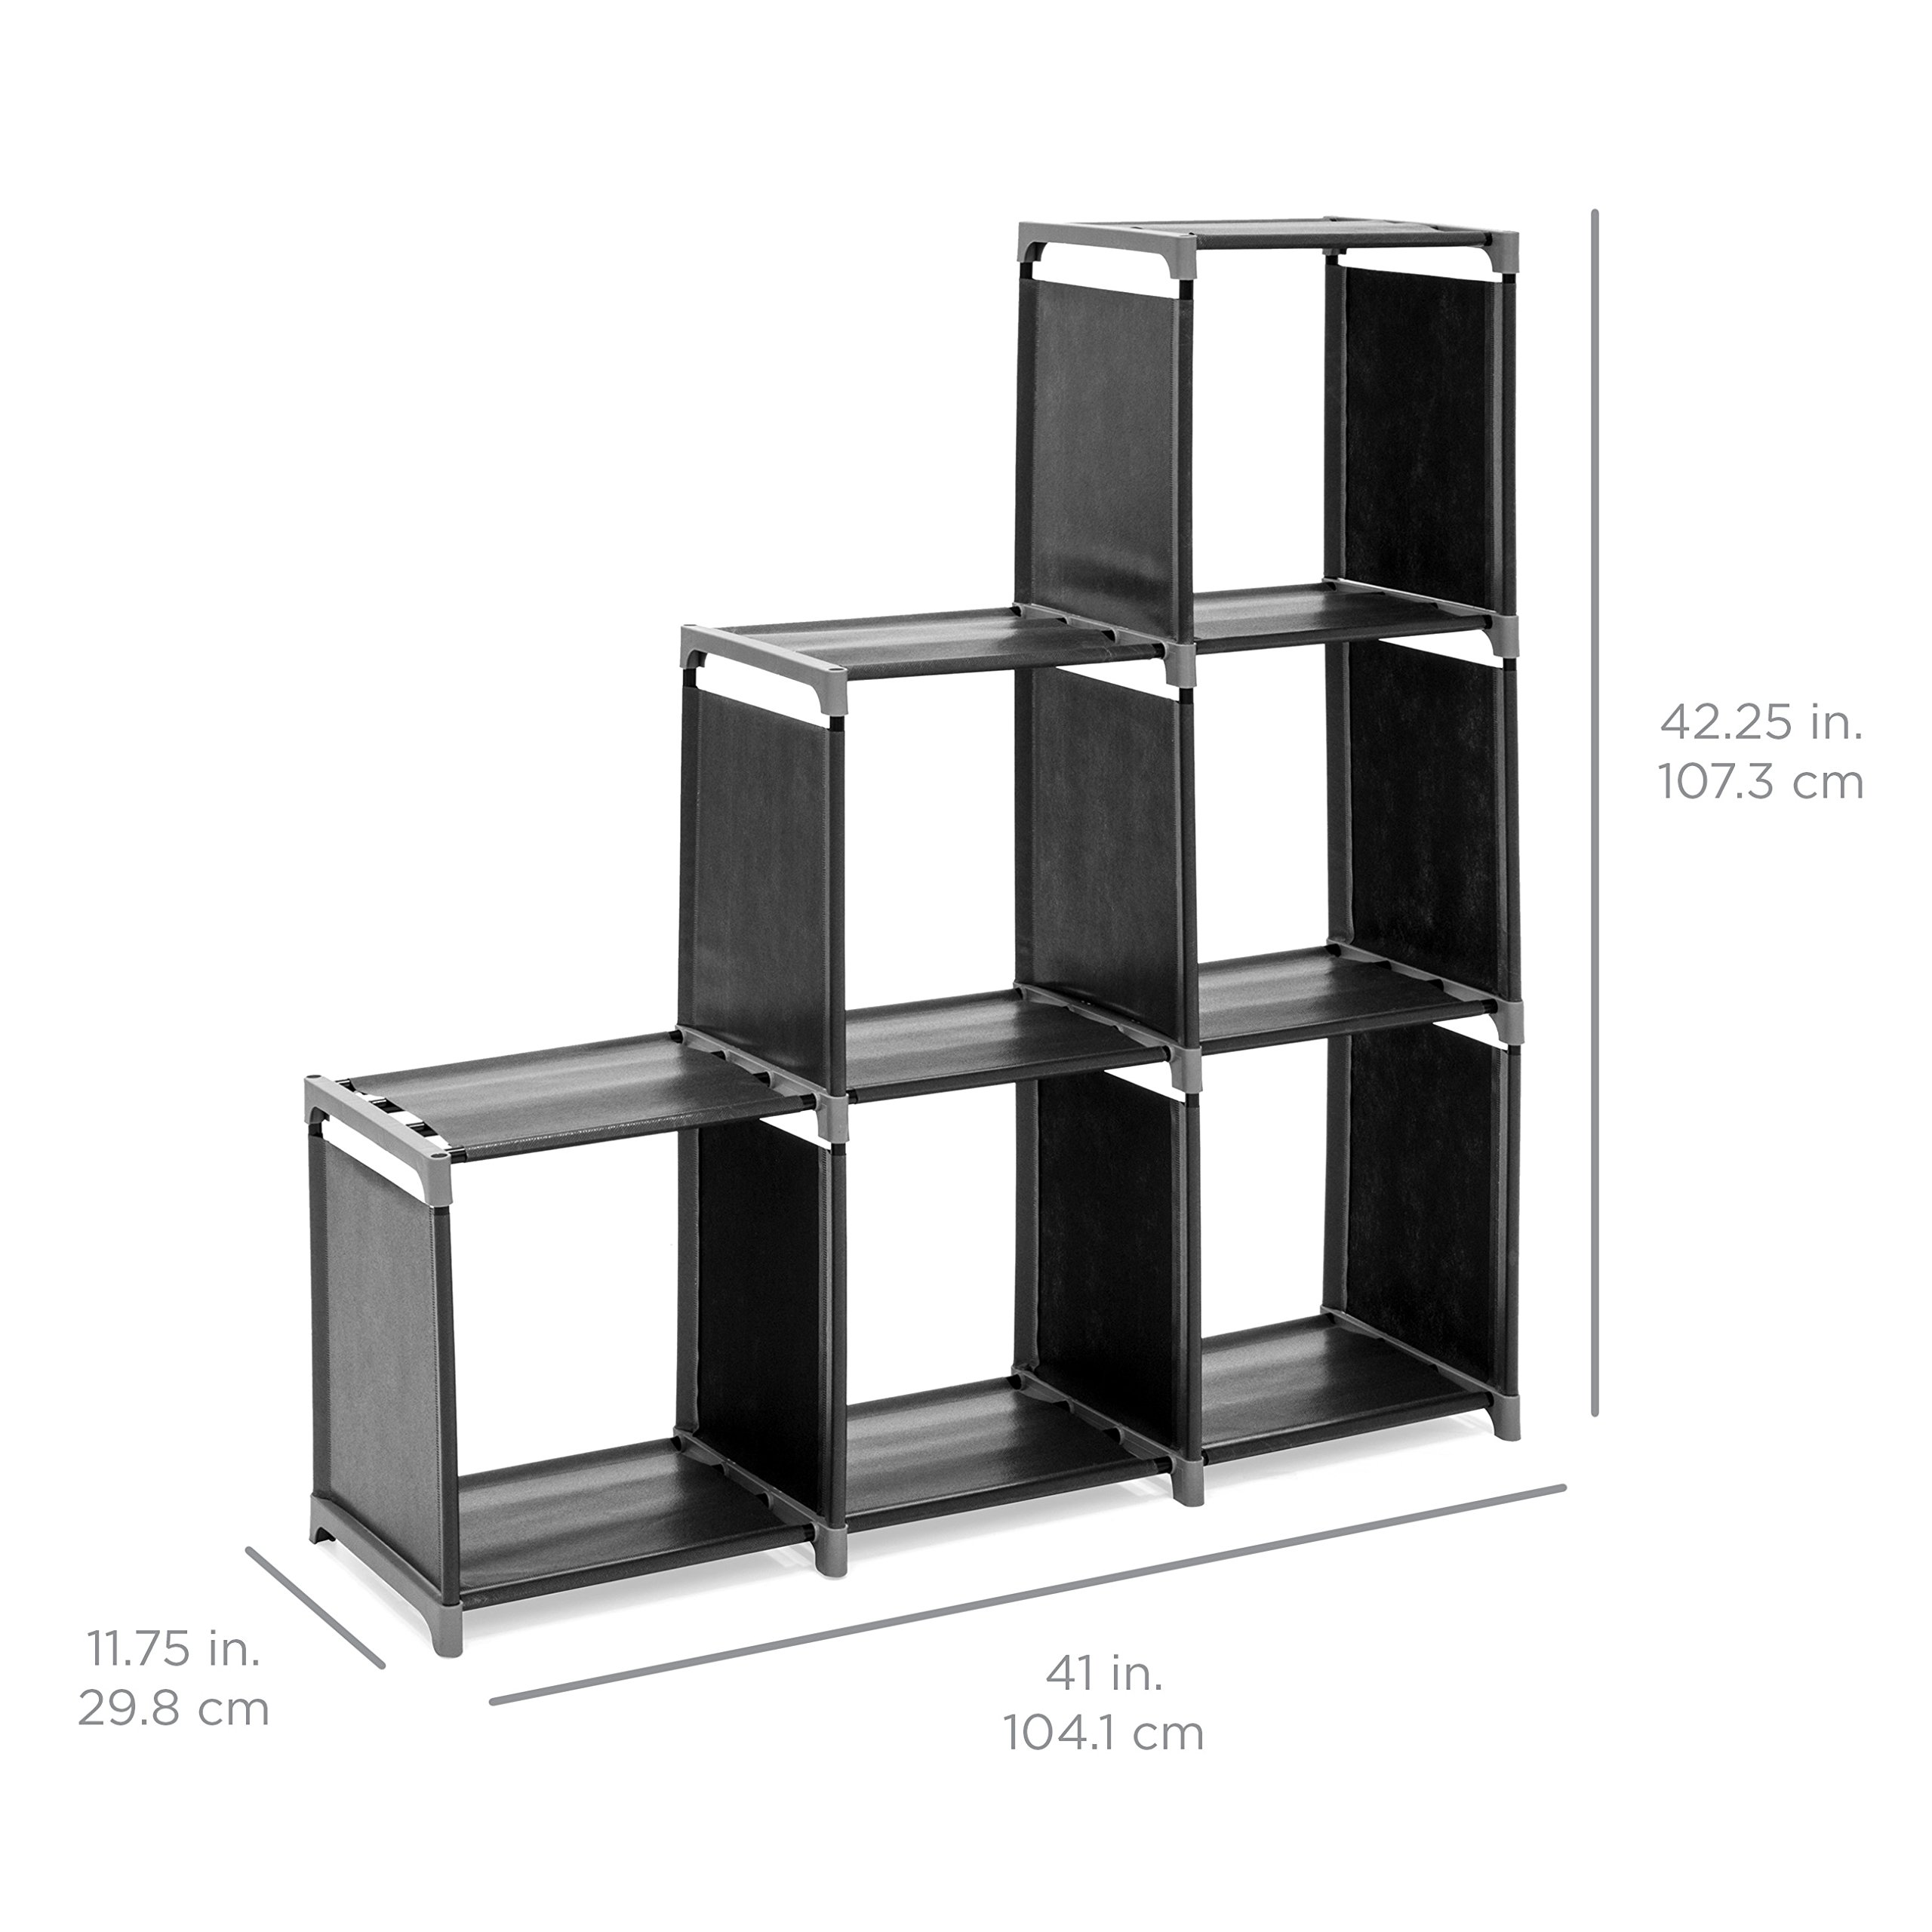 Best Choice Products 6-Drawer Multi-Purpose Shelving Cubby Storage Cabinet (Black) by Best Choice Products (Image #6)